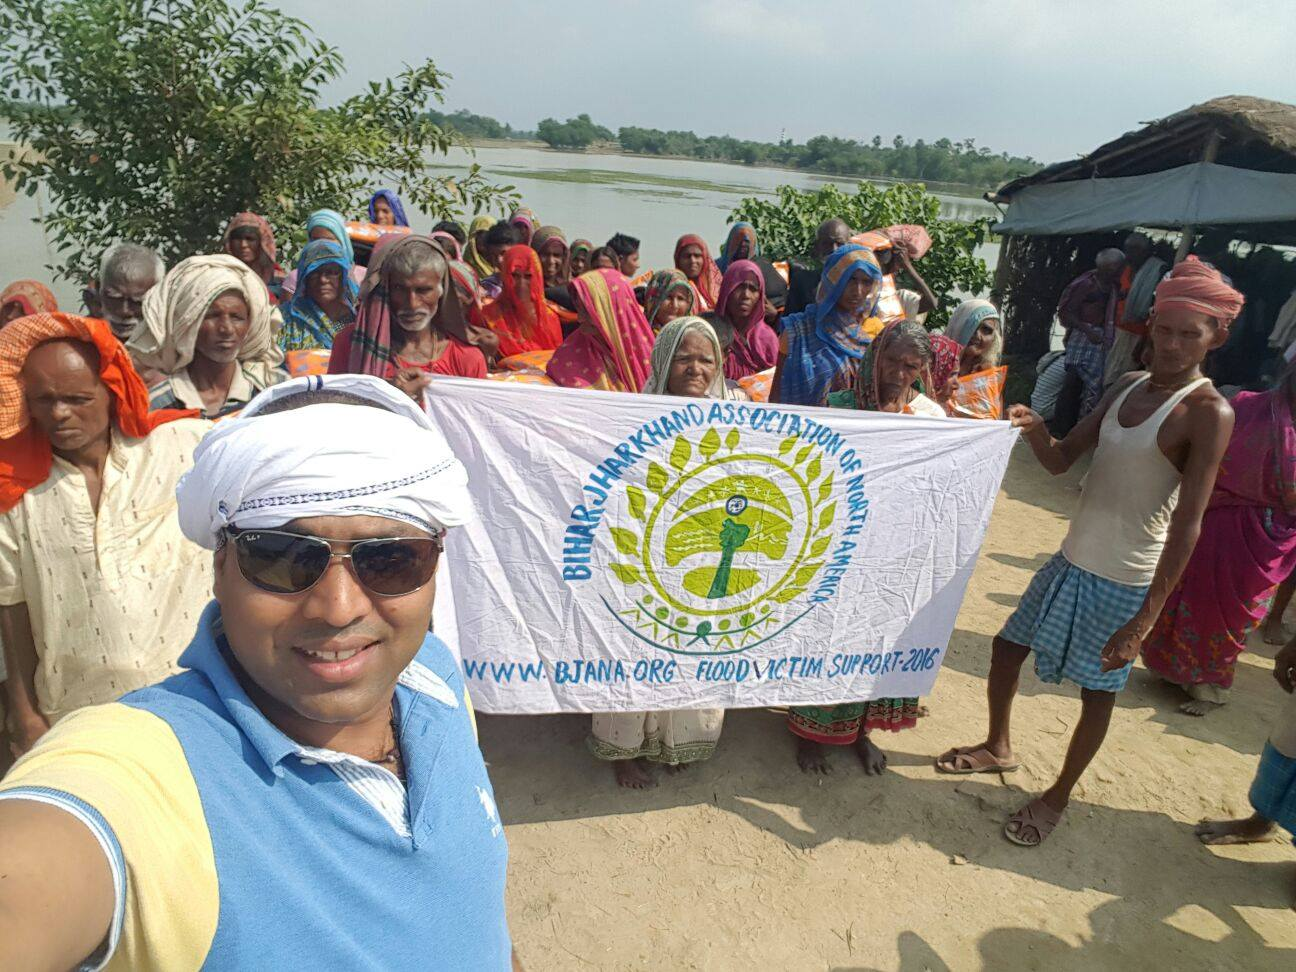 BJANA Member Mr. Alok Kumar organized a flood relief camp in Darbhanga, Bihar